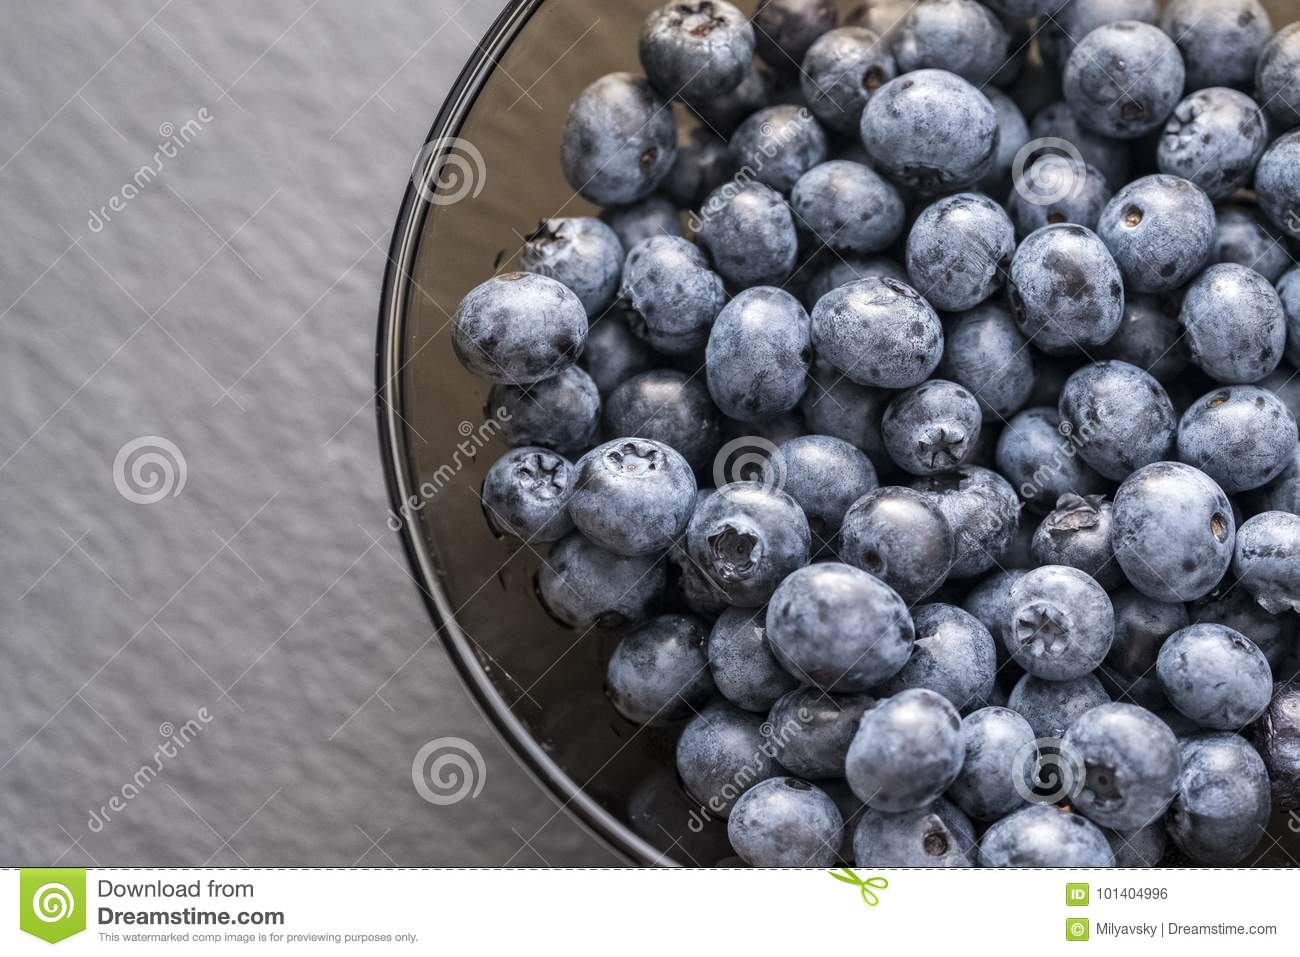 What is useful blueberries 42